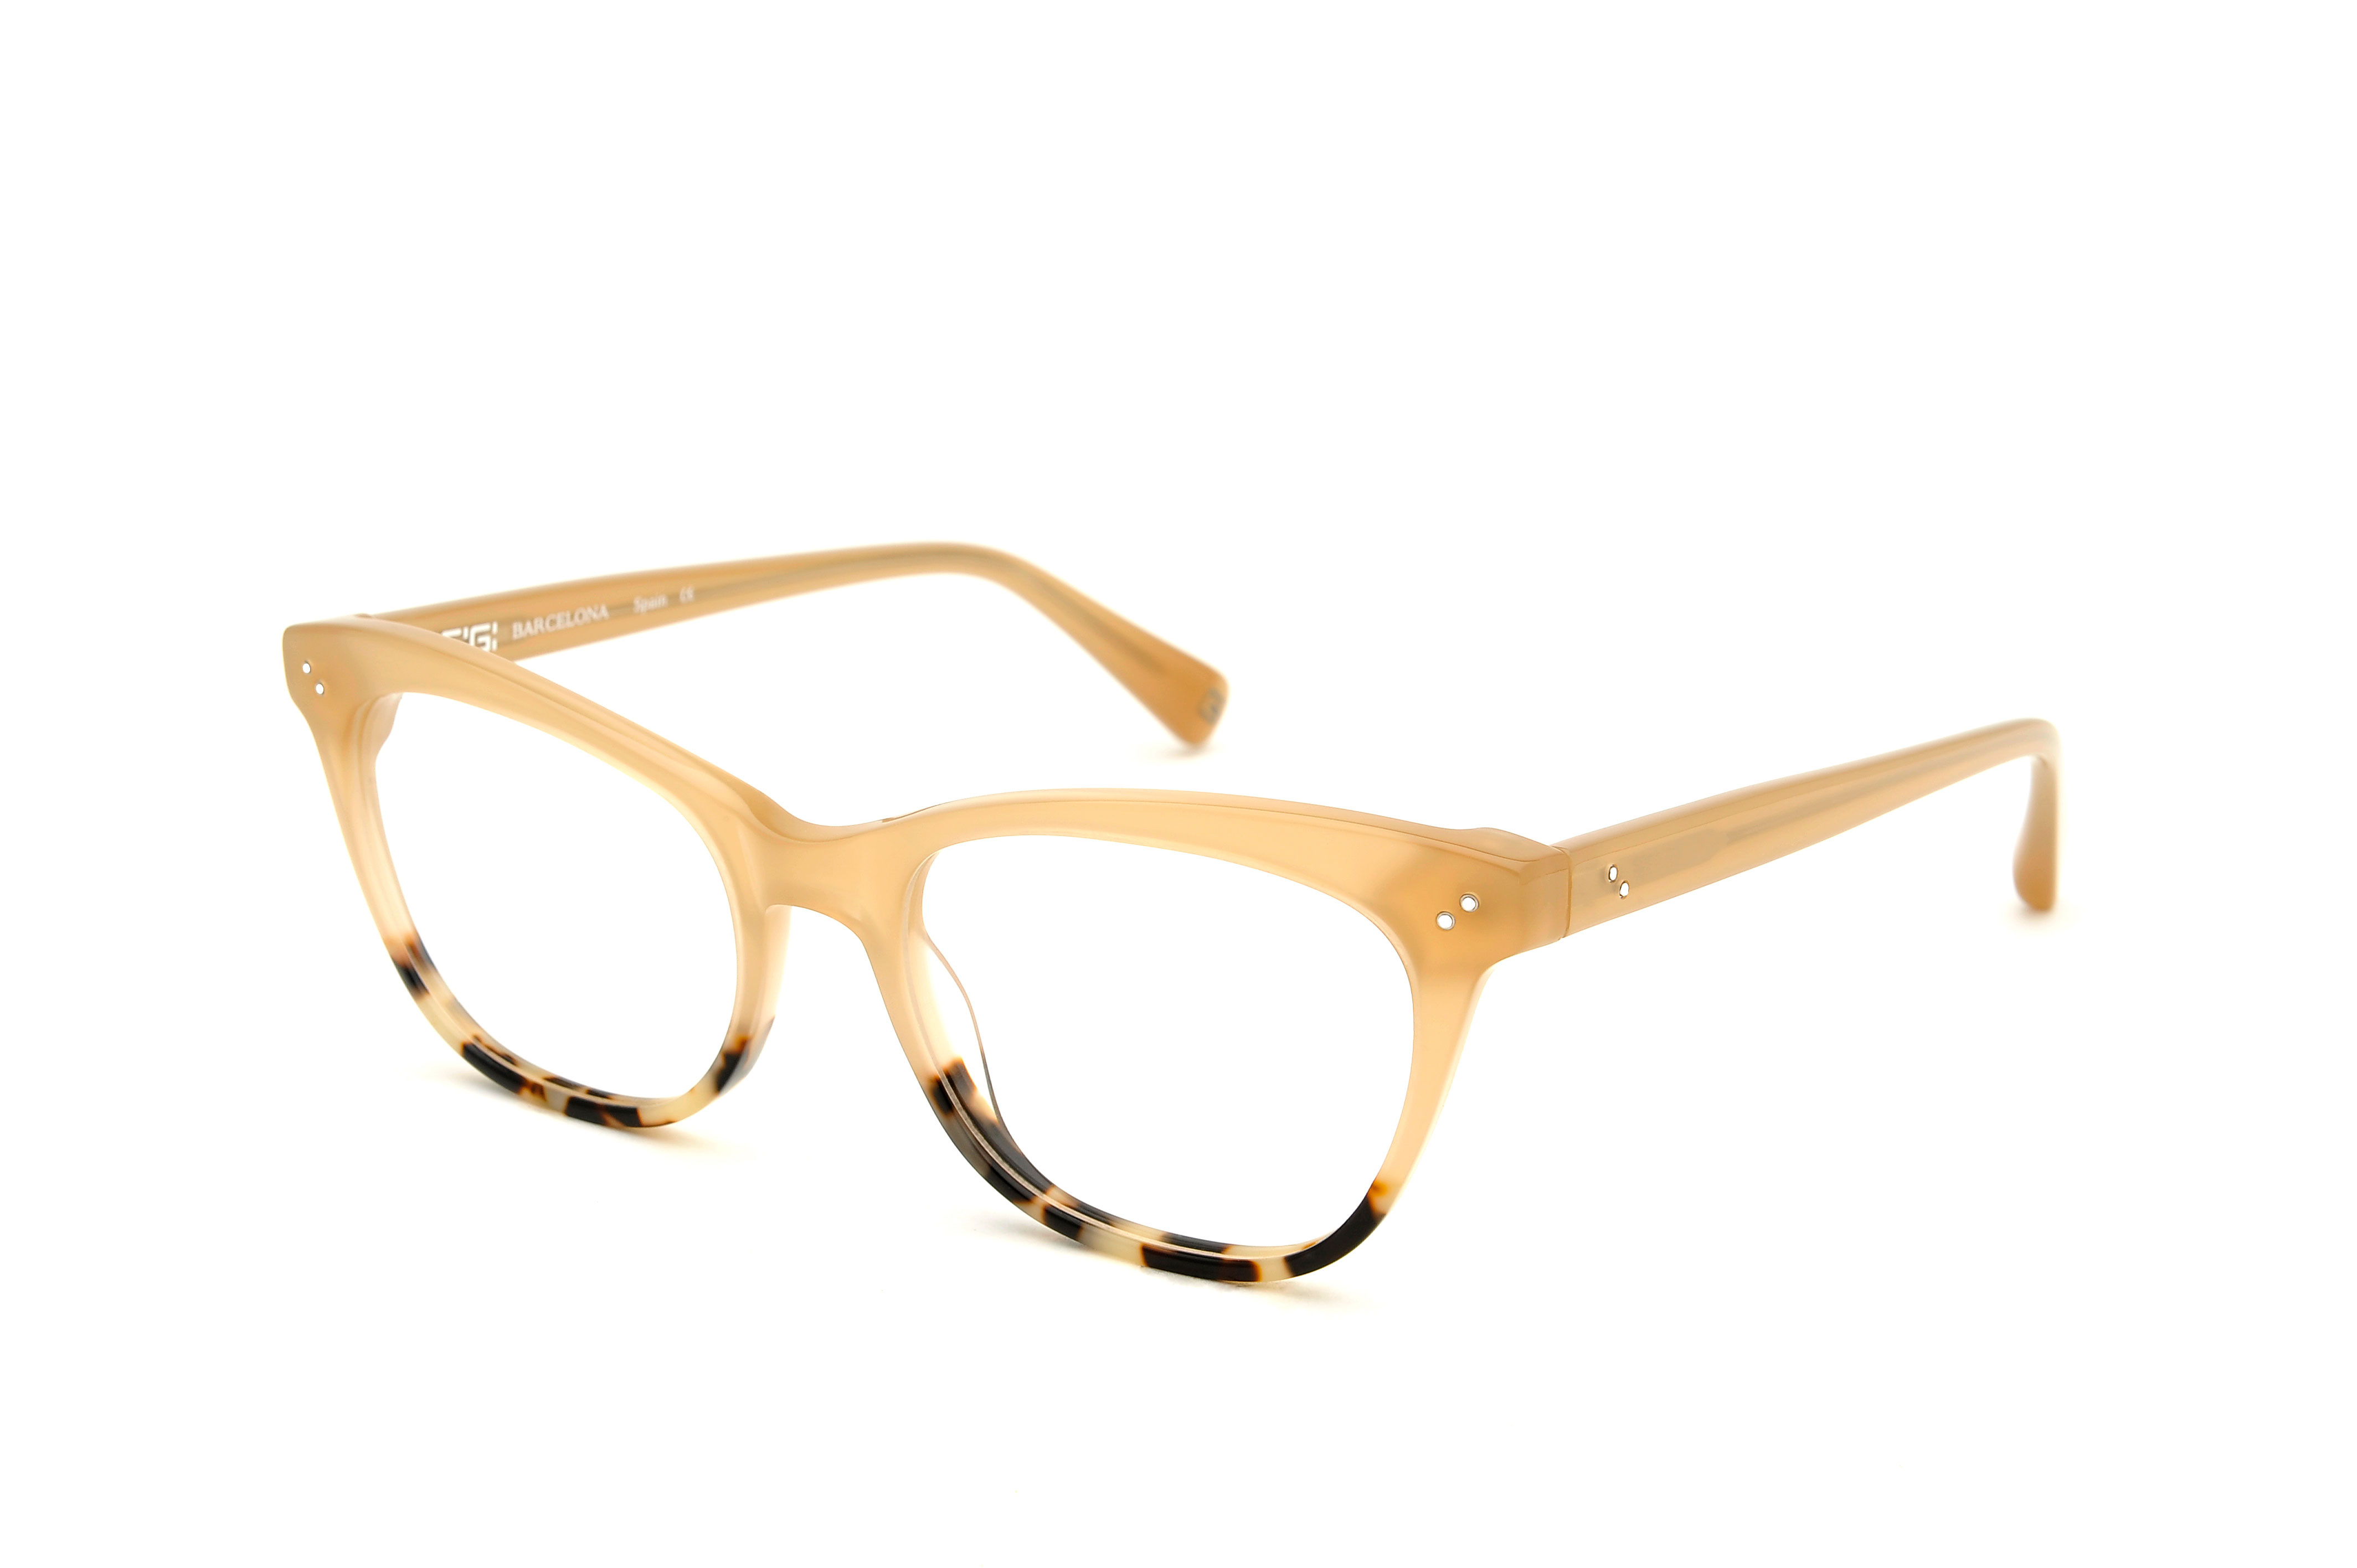 Chiara acetate cat eye brown sunglasses by GIGI Studios